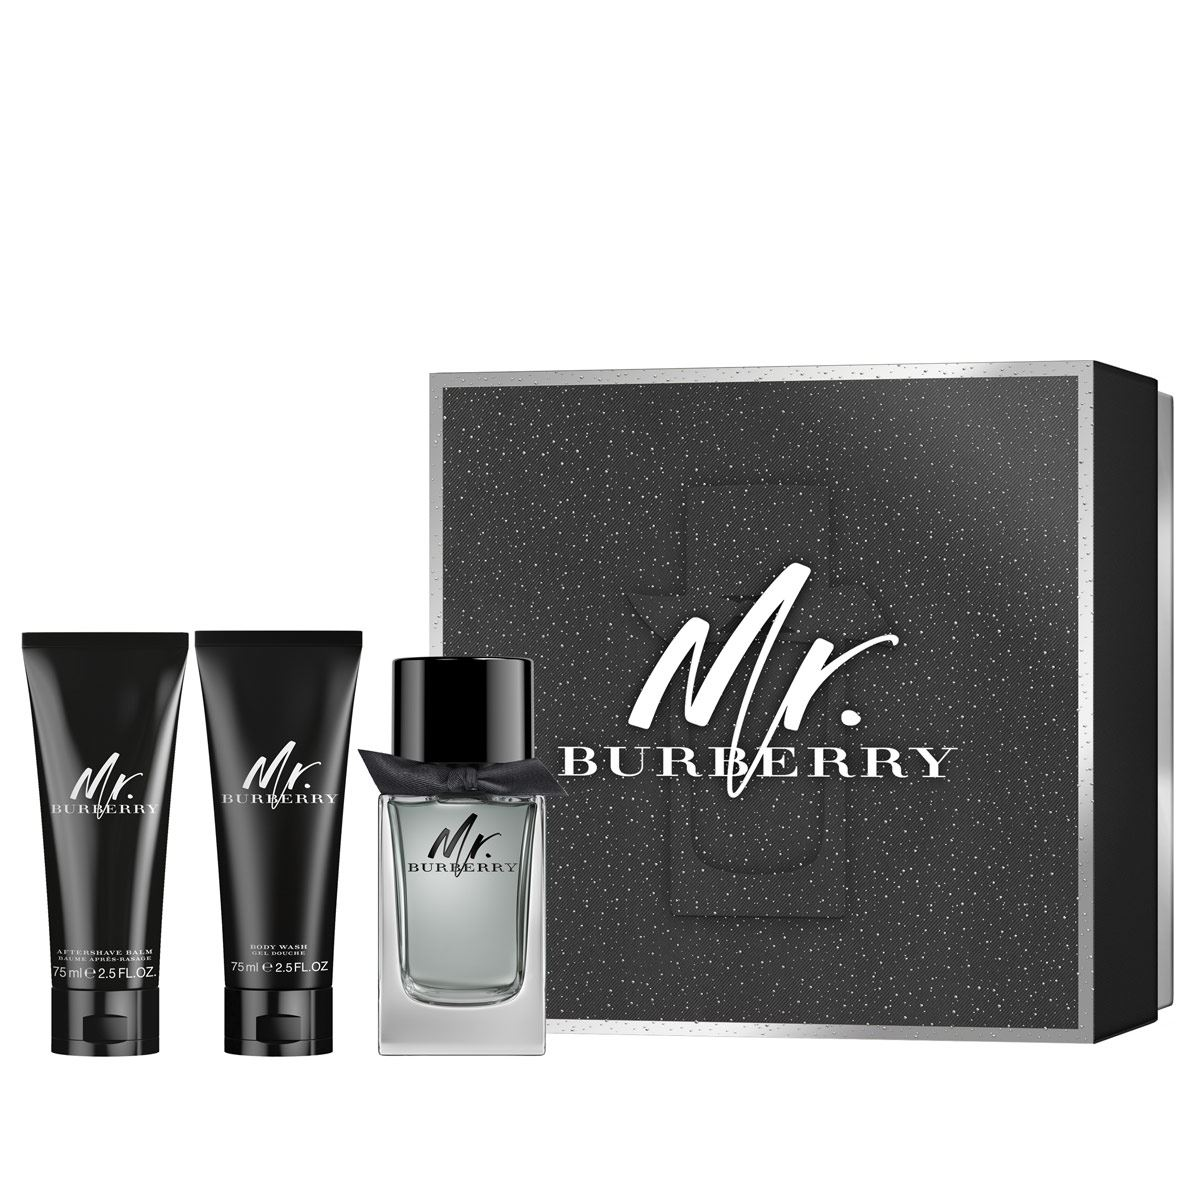 Estuche Mr Burberry Edt 100 ml